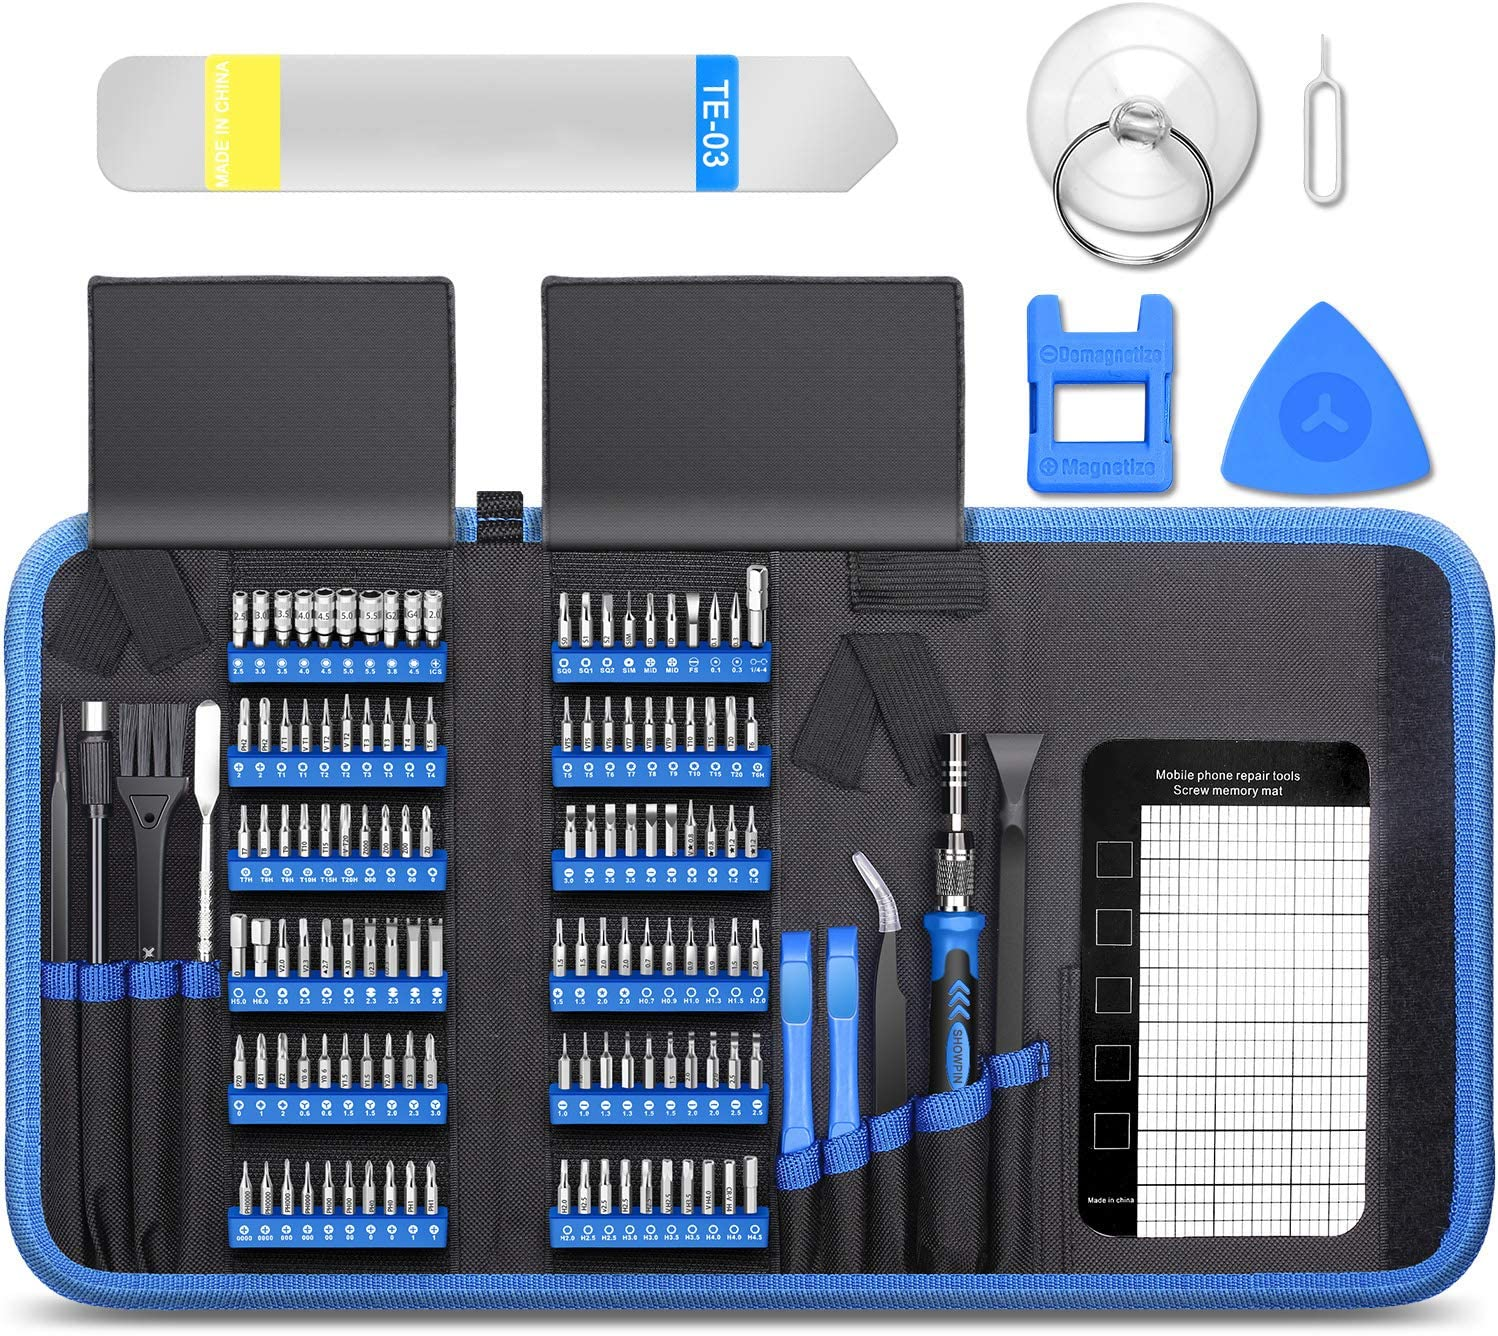 140 IN 1 Precision Magnetic Screwdriver Set for Computer, Professional Screen Repair Kit for iPhone, Samsung, Small Impact Screw Driver Set for HP Laptop, Asus PC, Glass,Ps4, Electronic DIY Hand Tools